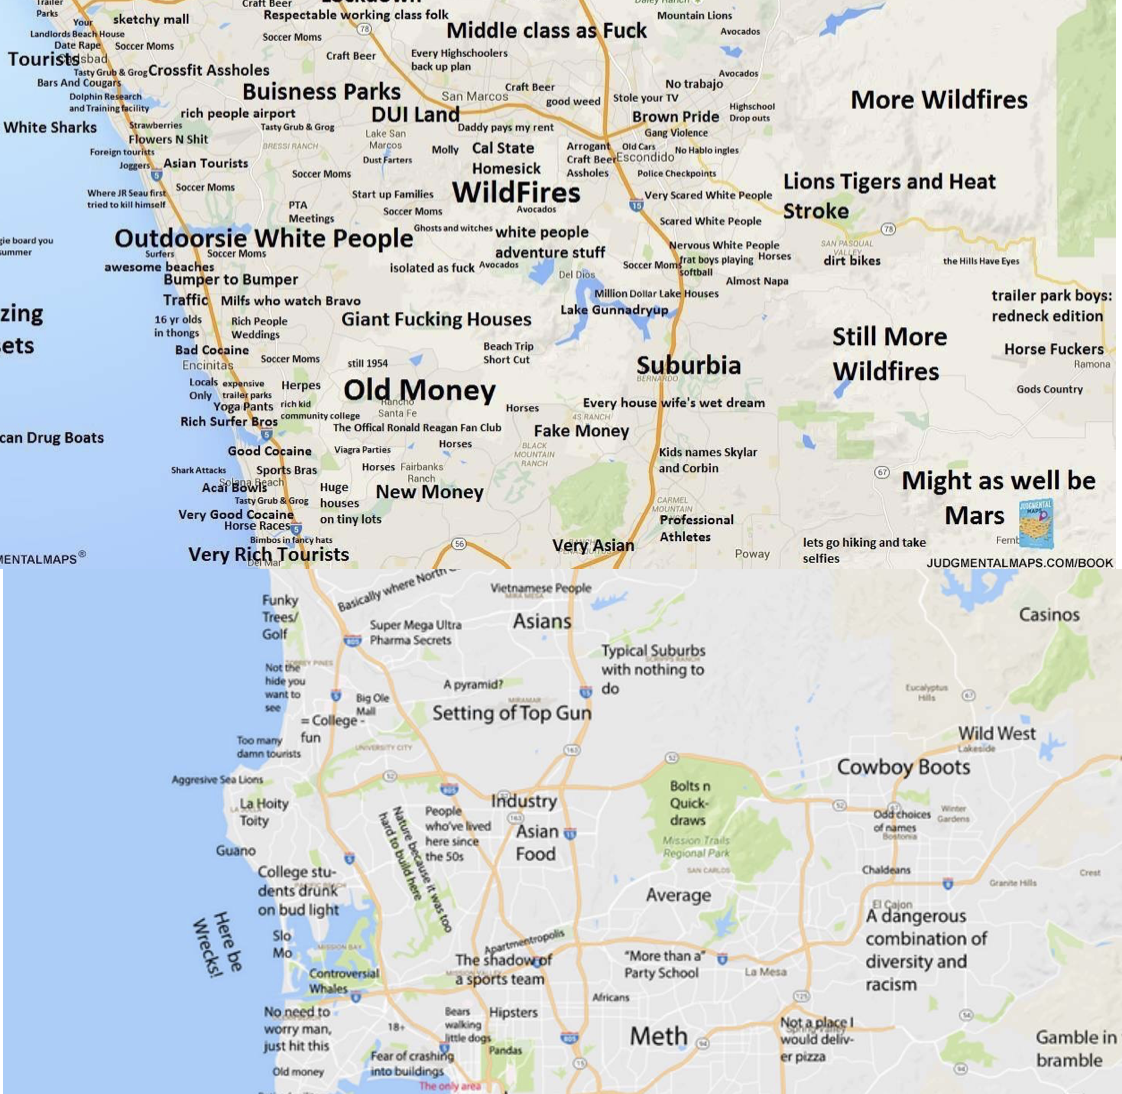 SanDiegoVille: TBT RePost: The Judgmental Maps Of San Diego